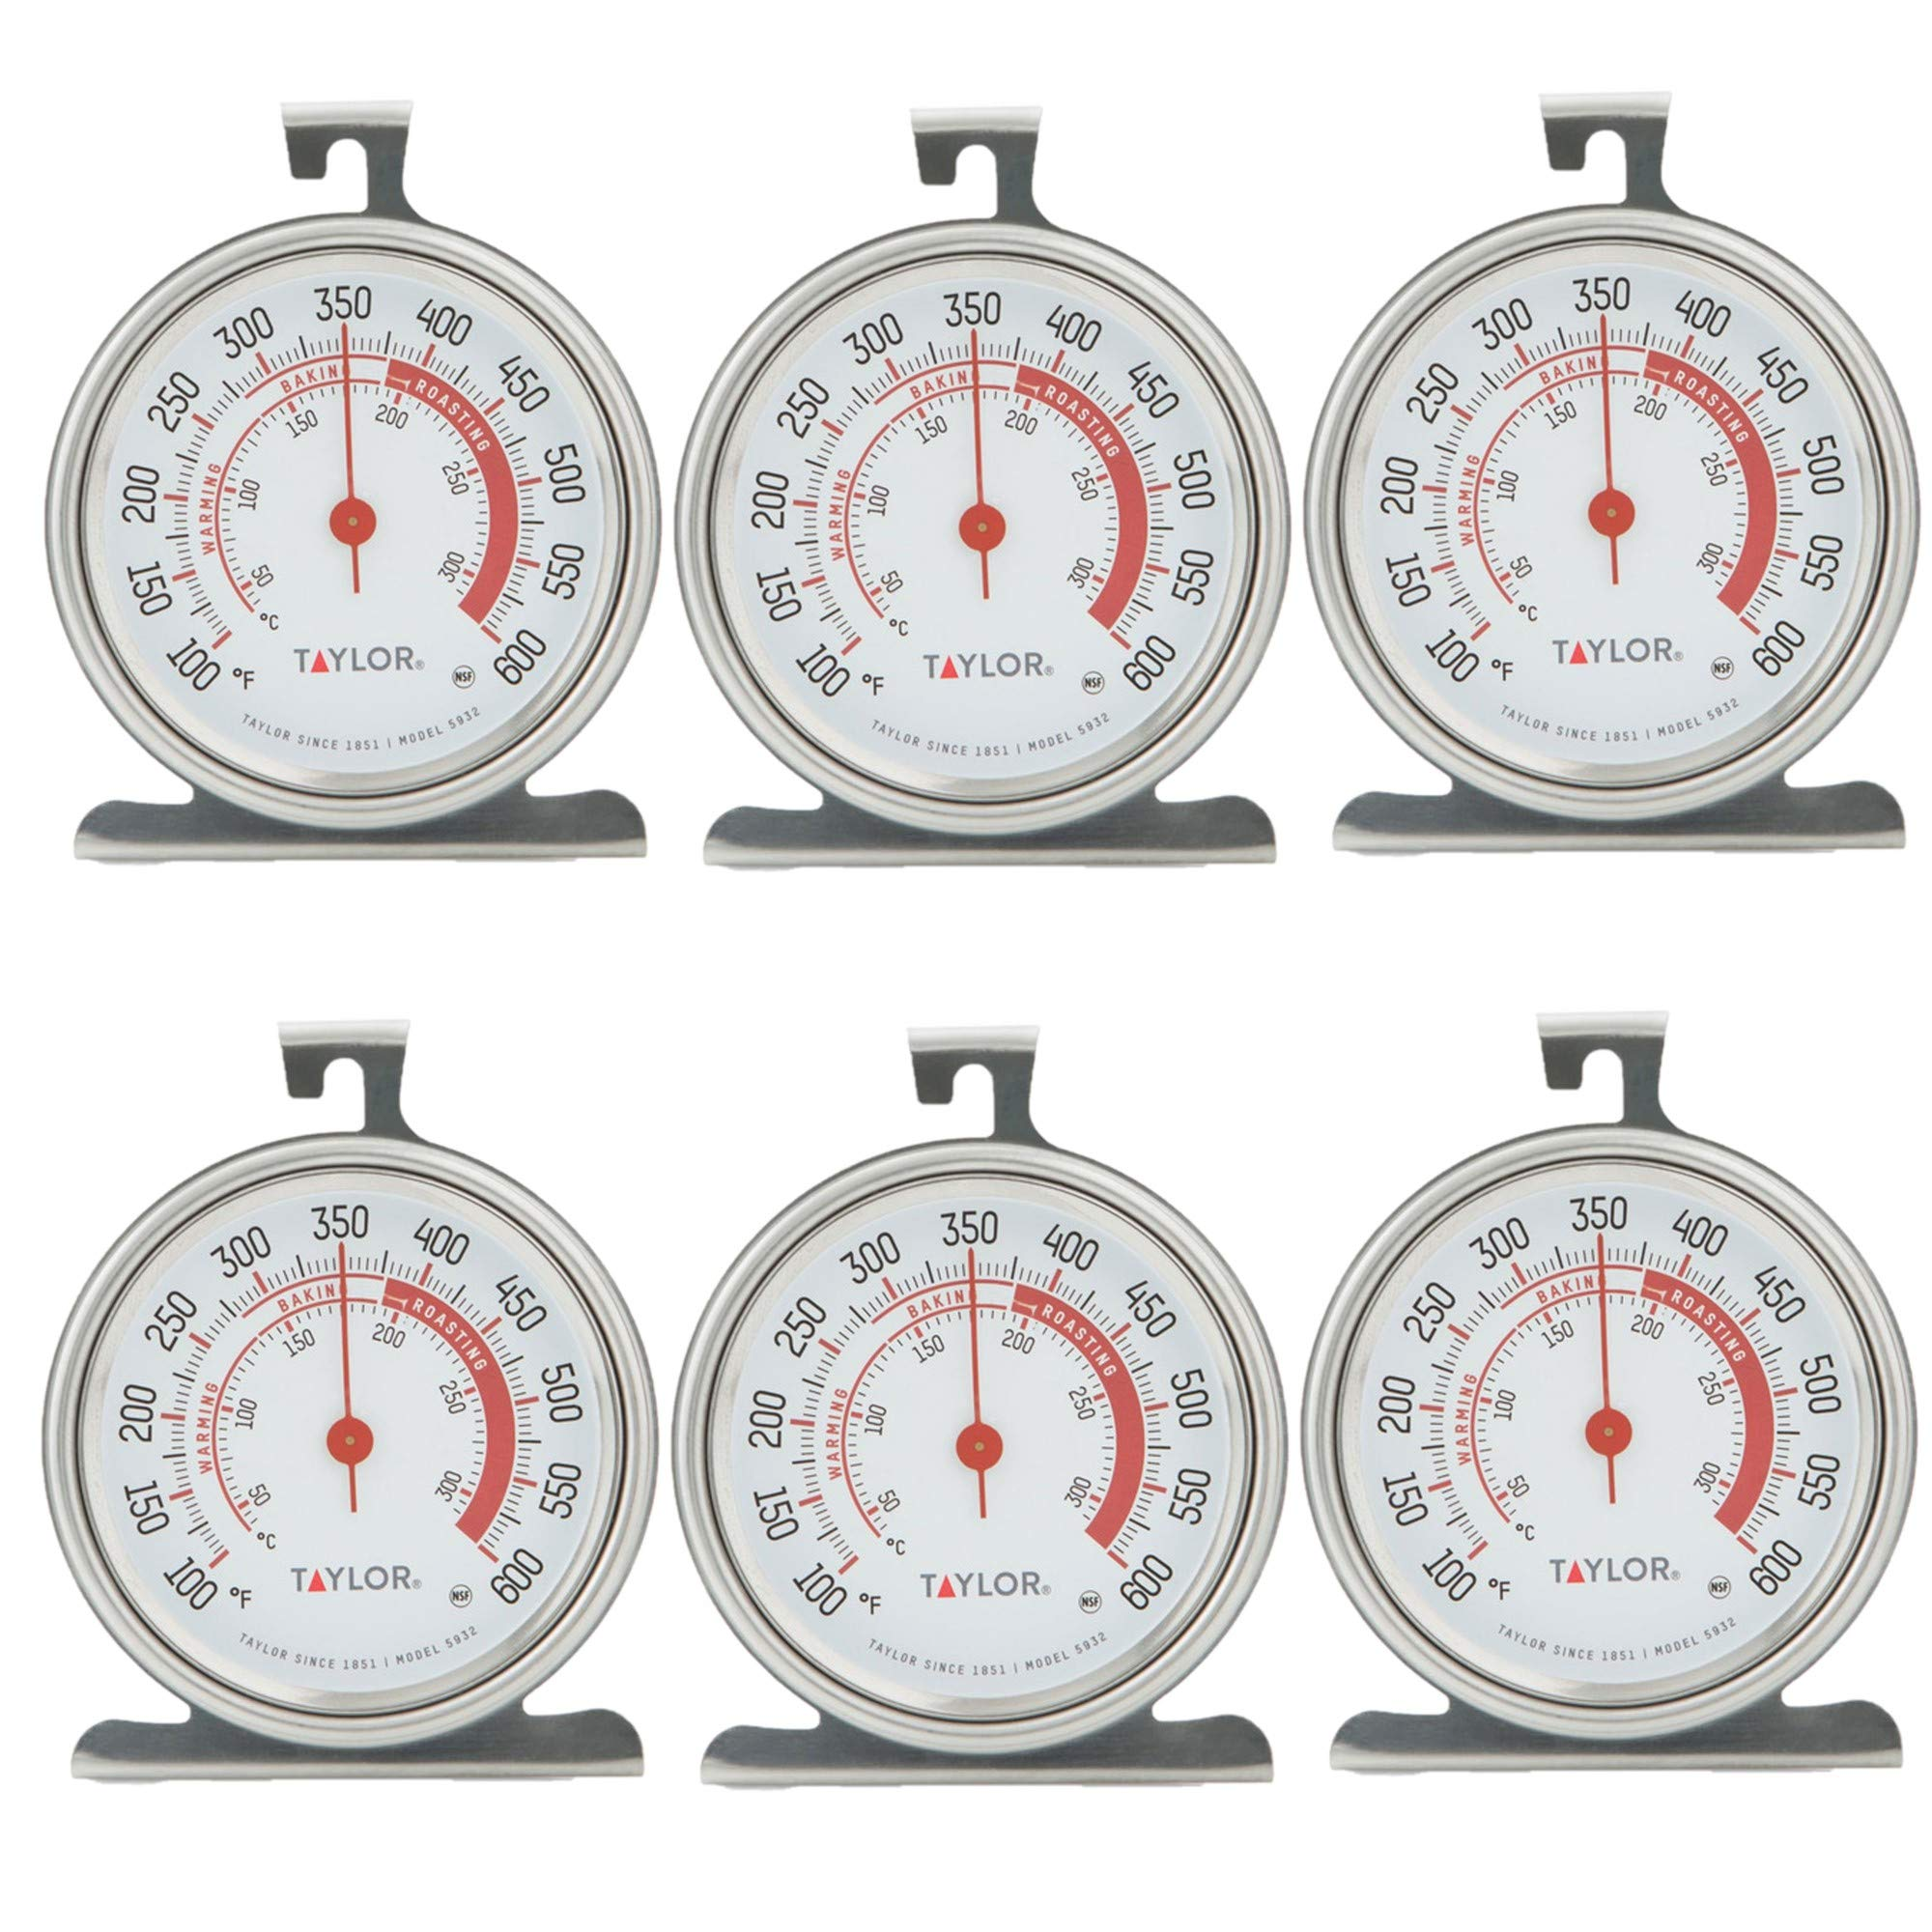 Taylor Classic Series Large Dial Oven Thermometer (6) by Taylor Precision Products